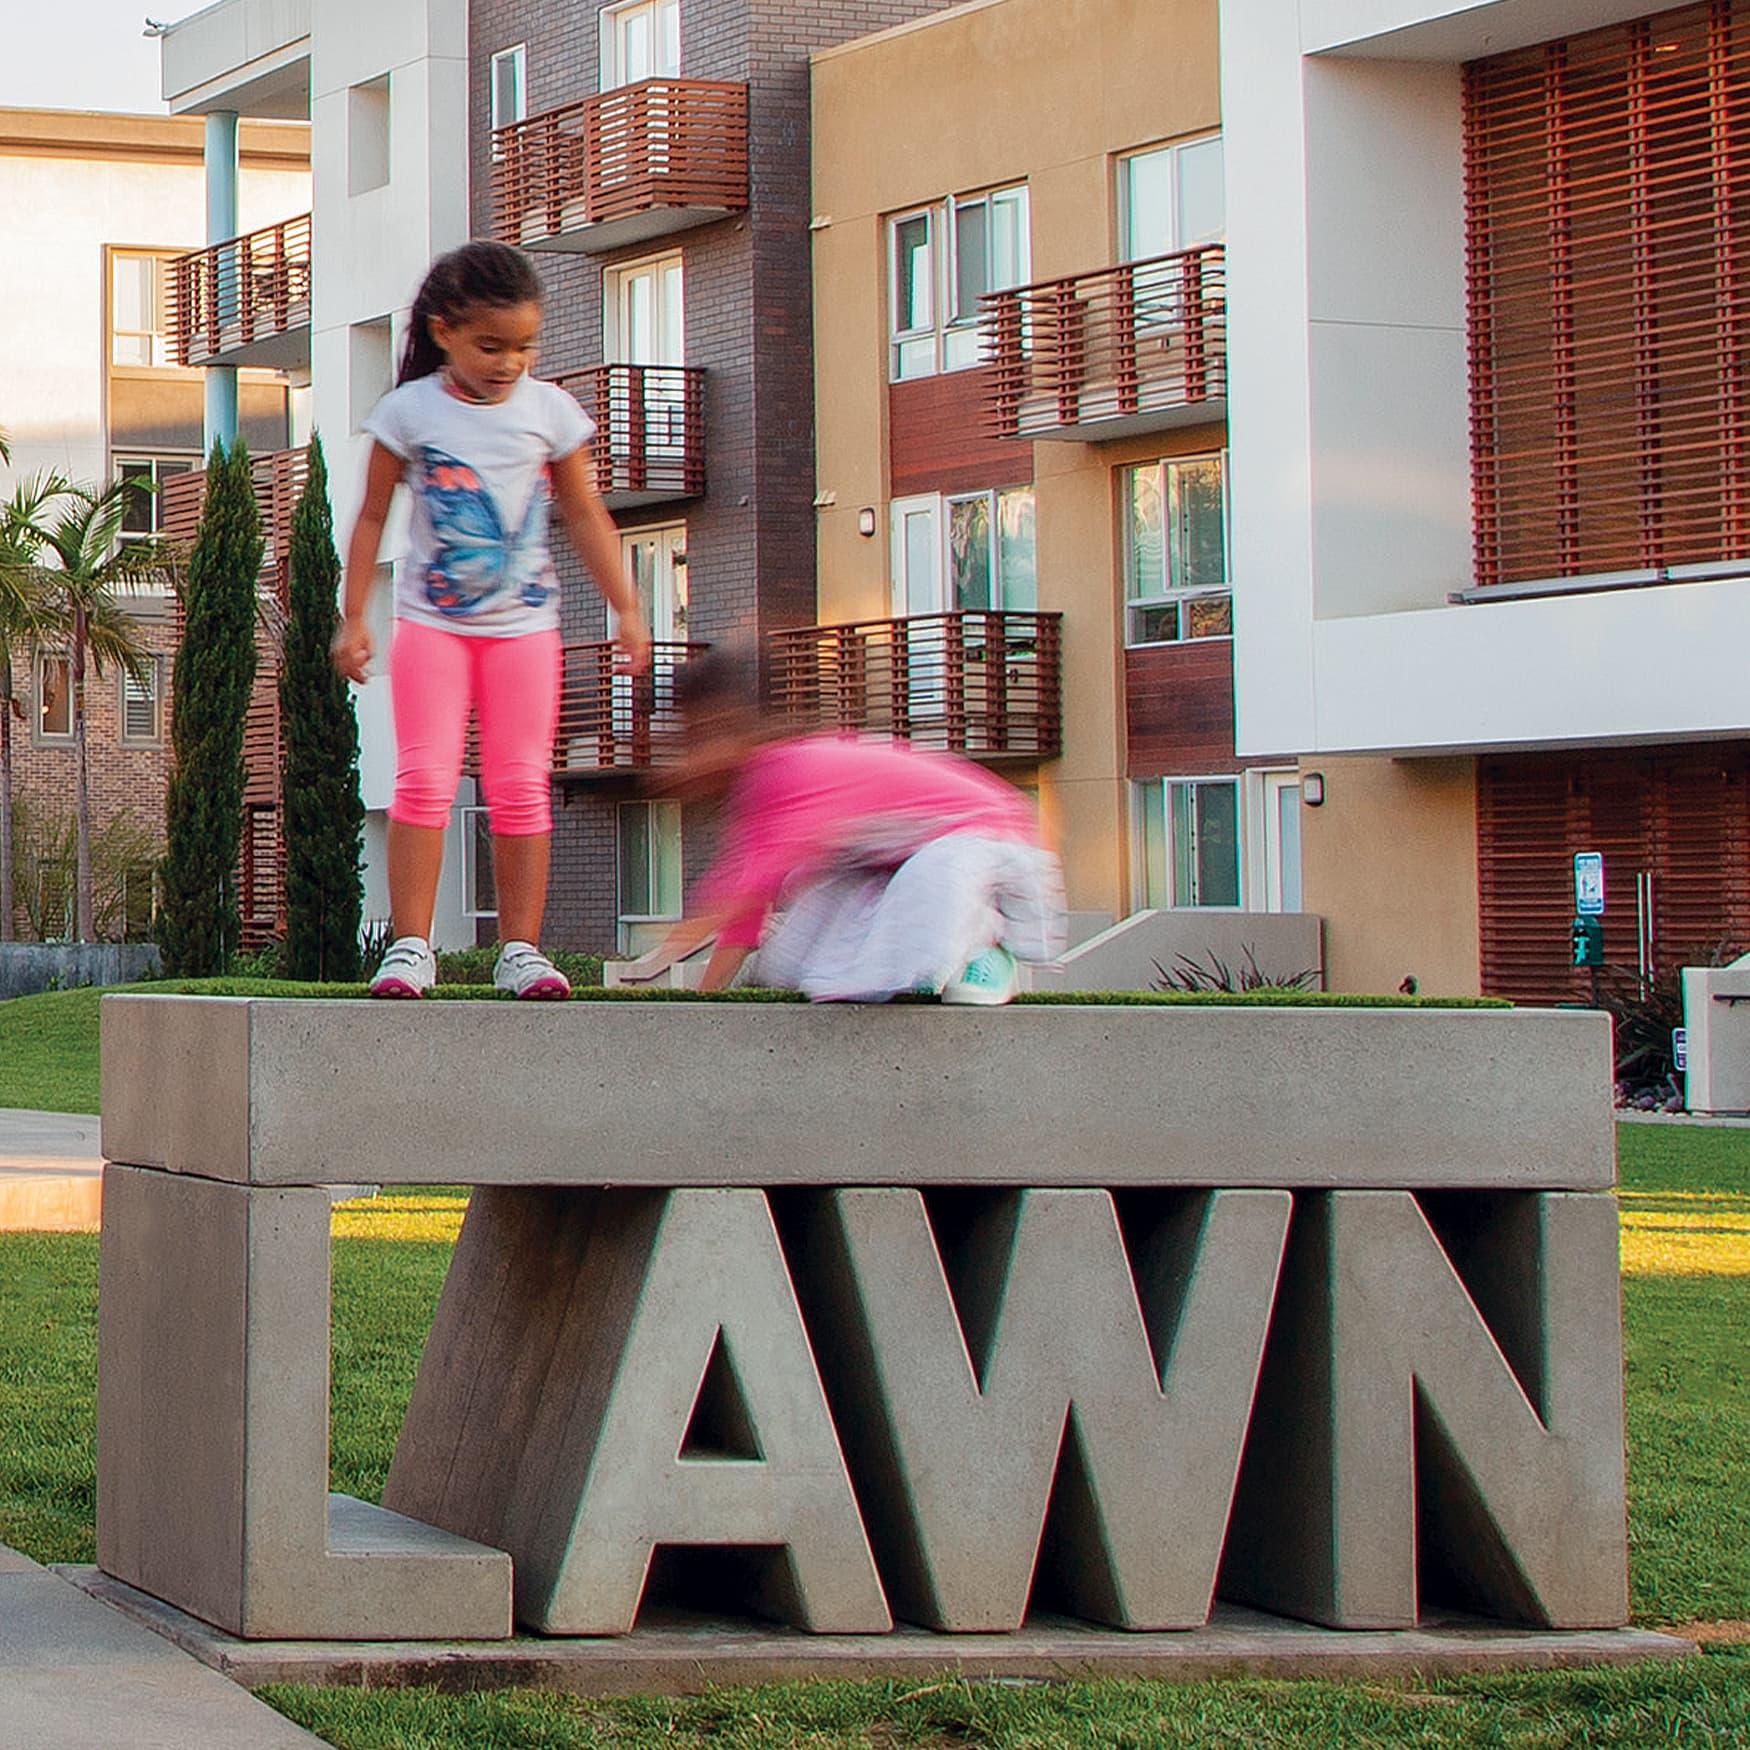 Two young girls playing on a concrete sign at the park.